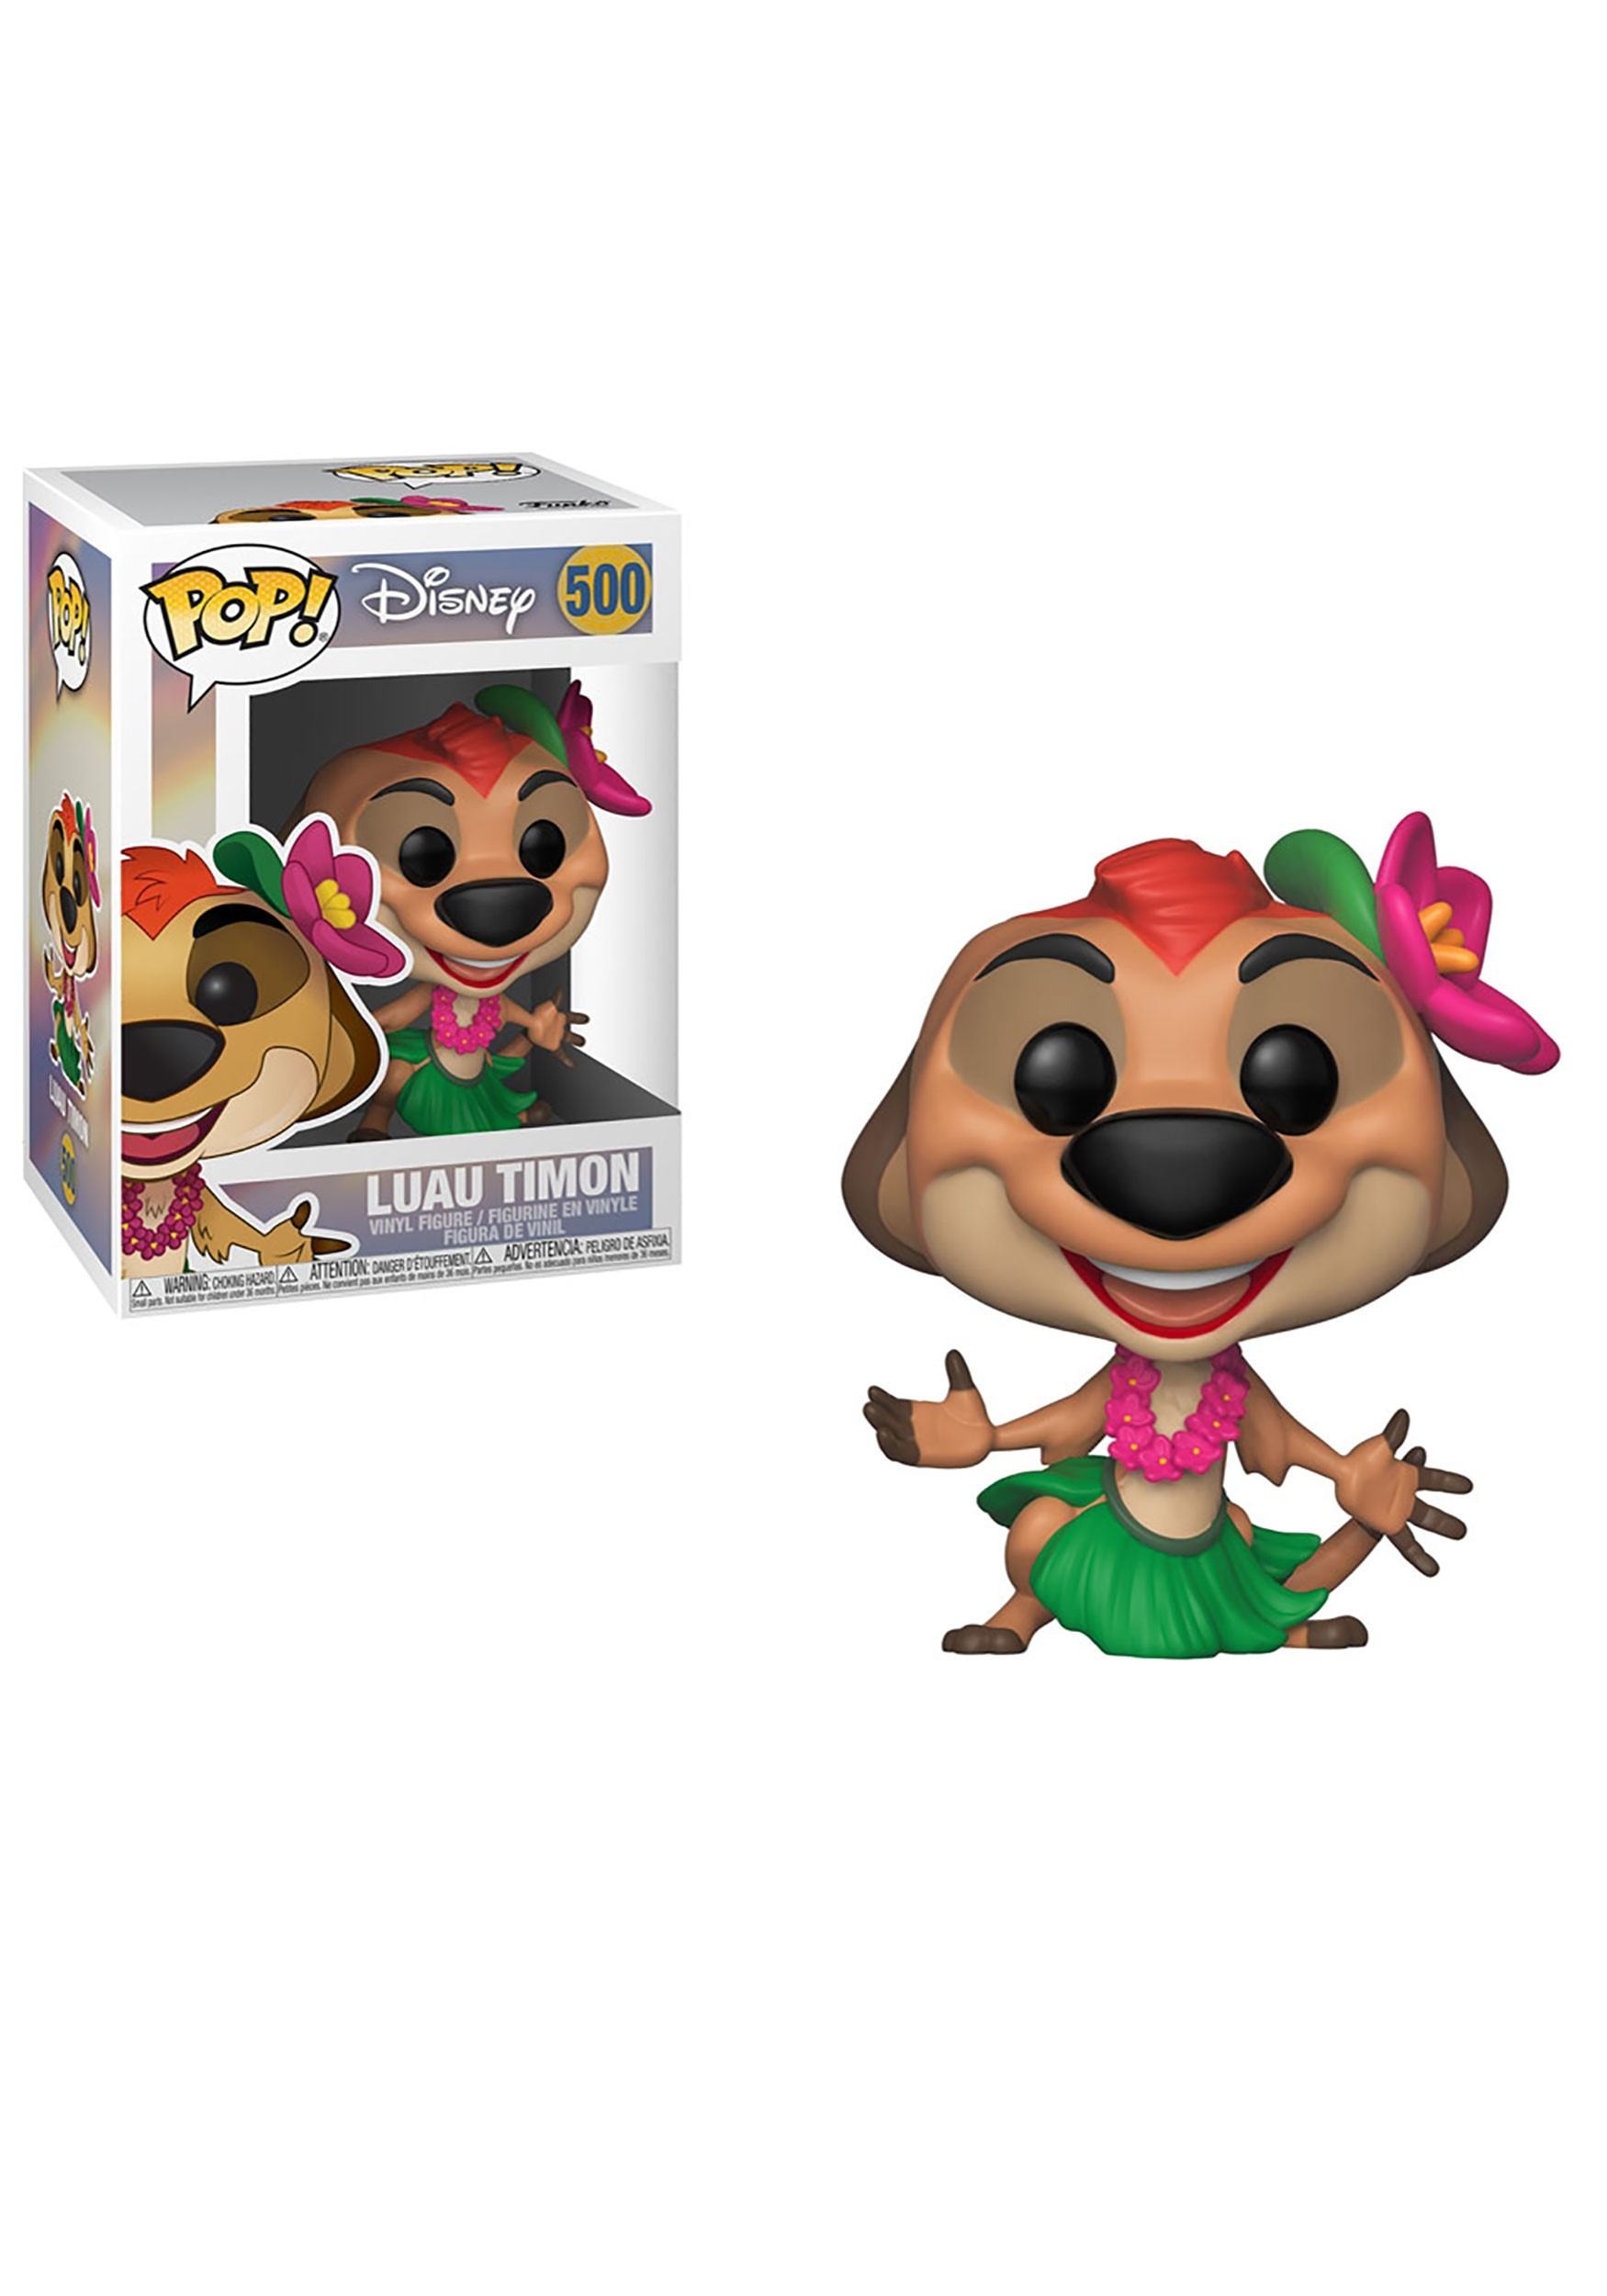 Pop! Disney: Luau Timon- Lion King